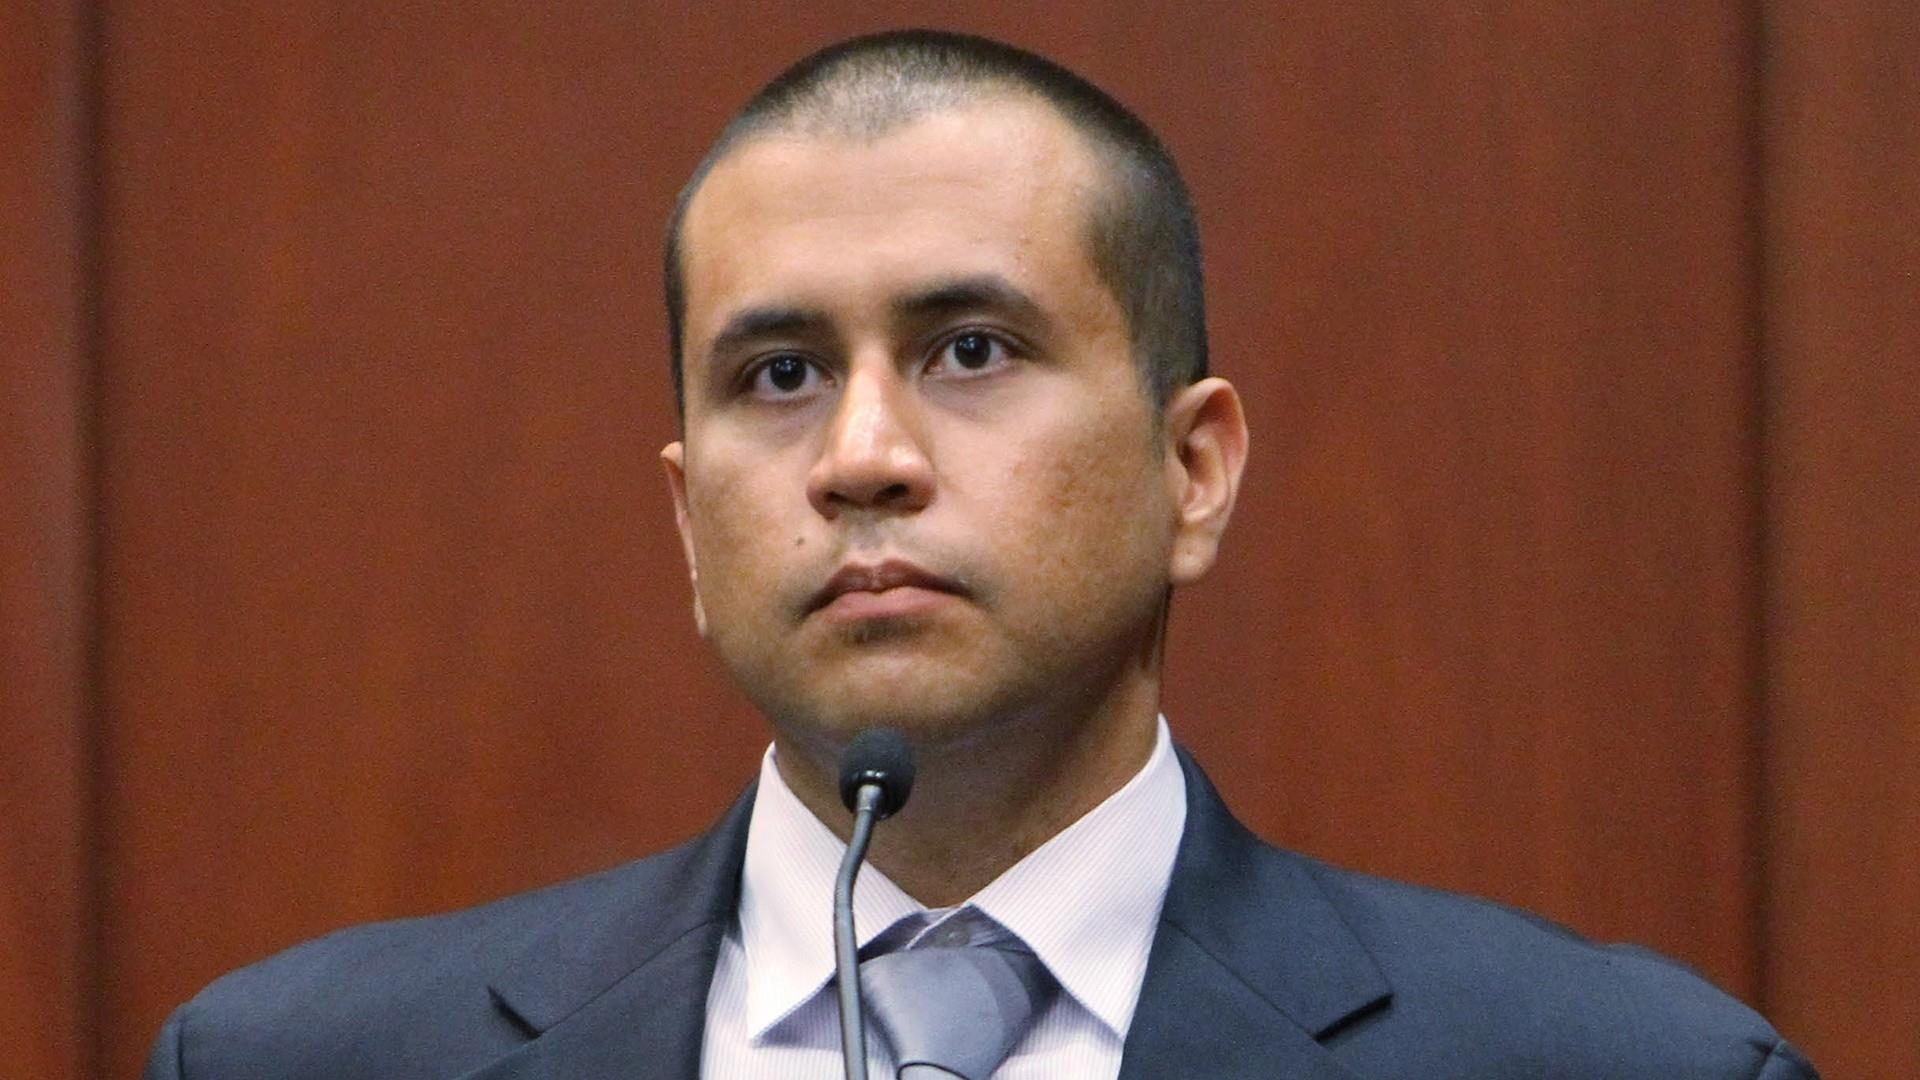 George Zimmerman sues Trayvon Martin's family for $100 million